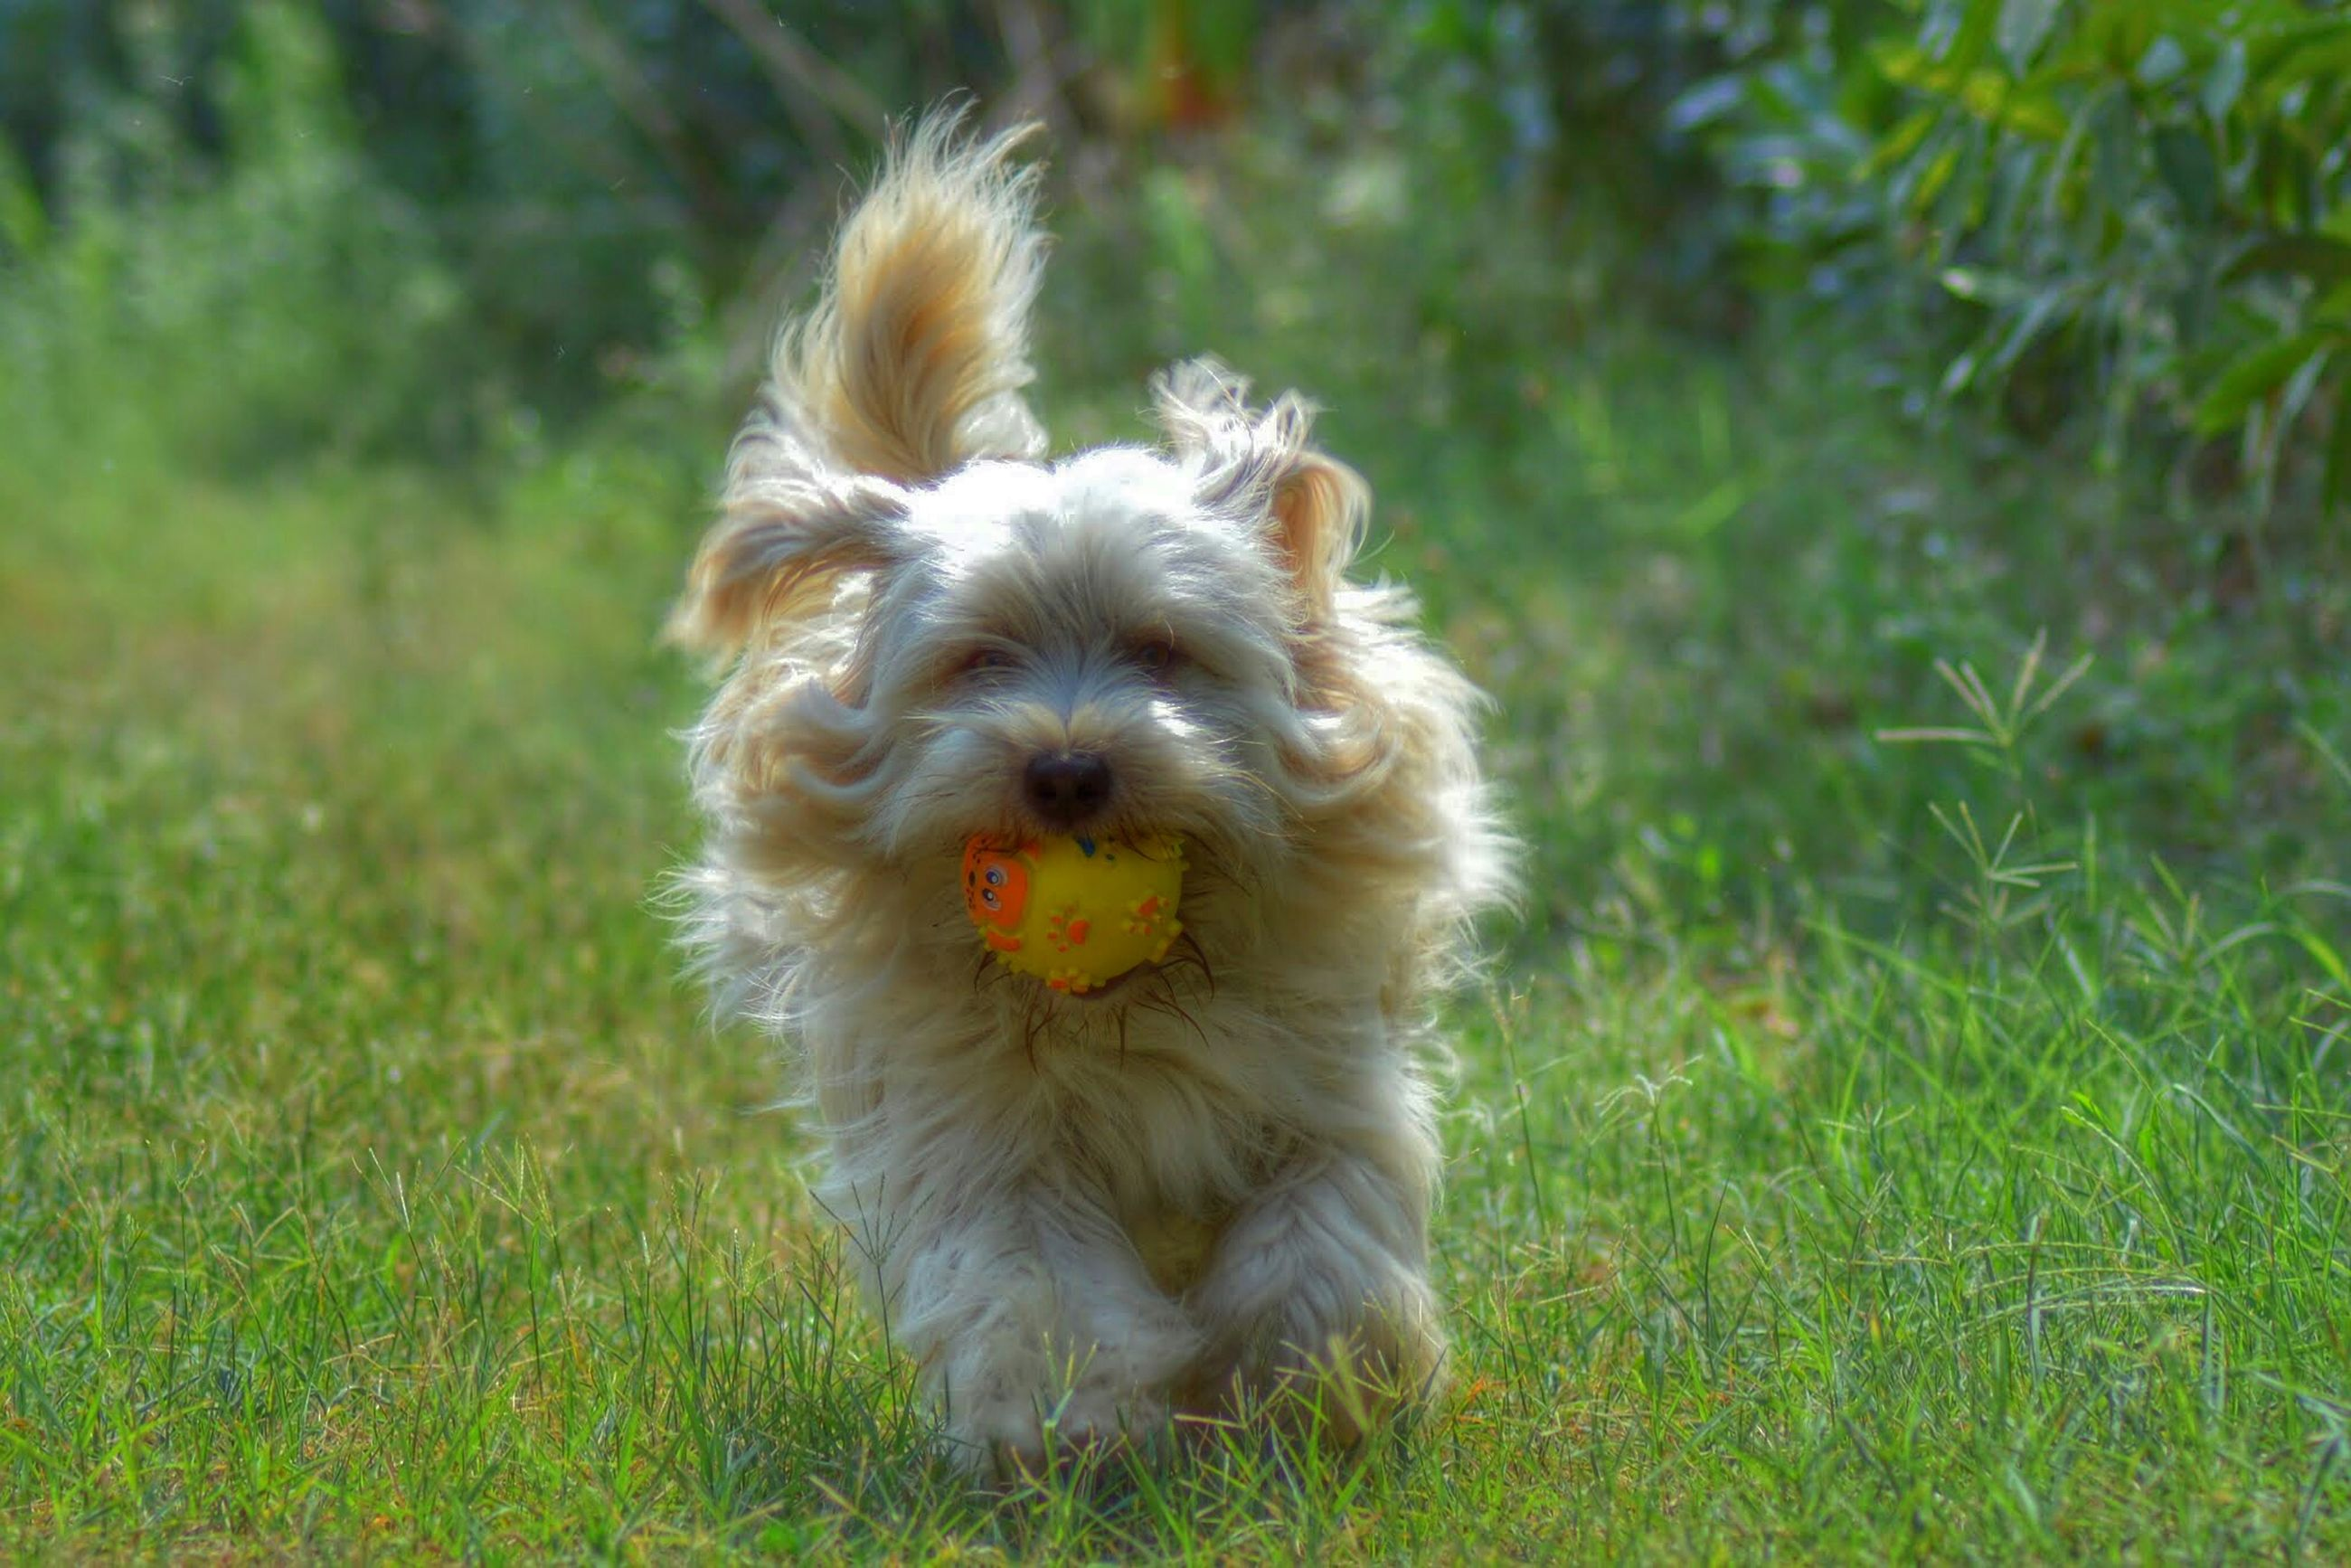 animal themes, dog, pets, one animal, domestic animals, grass, mammal, animal hair, field, grassy, focus on foreground, cute, sticking out tongue, full length, portrait, no people, looking at camera, front view, mouth open, close-up